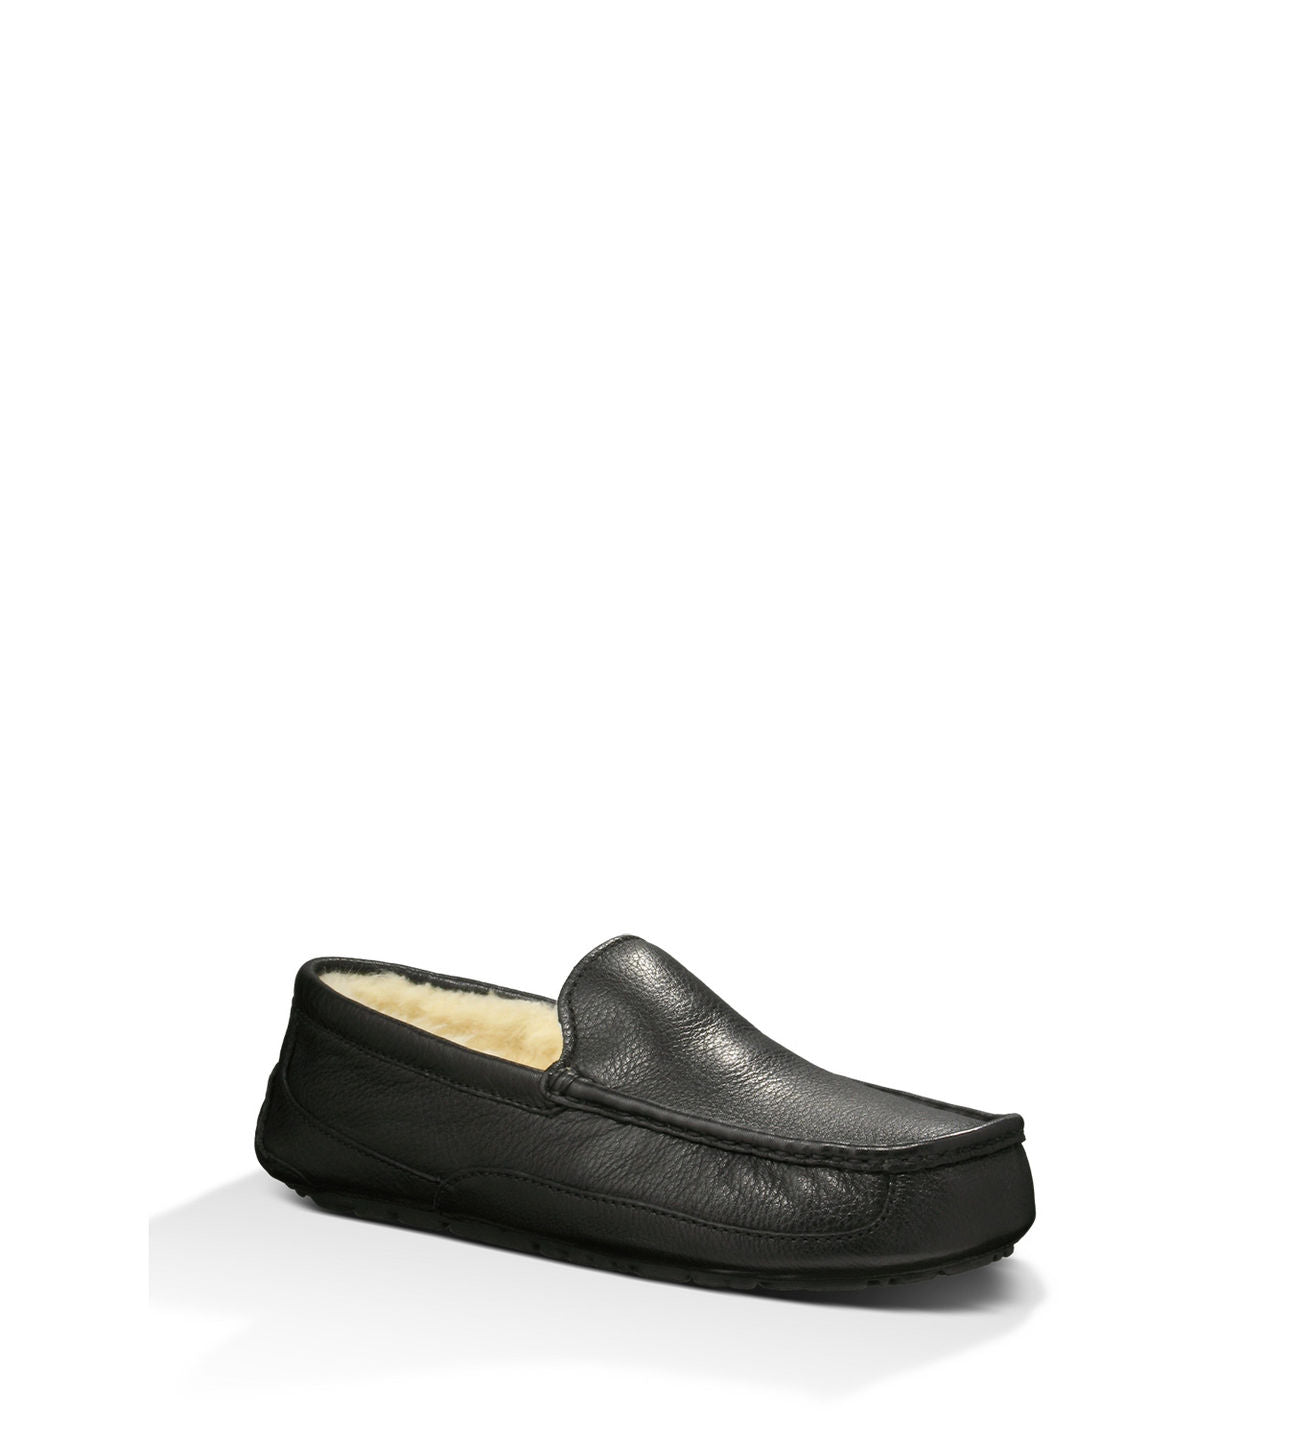 UGG Australia Men's Ascot in Black Leather